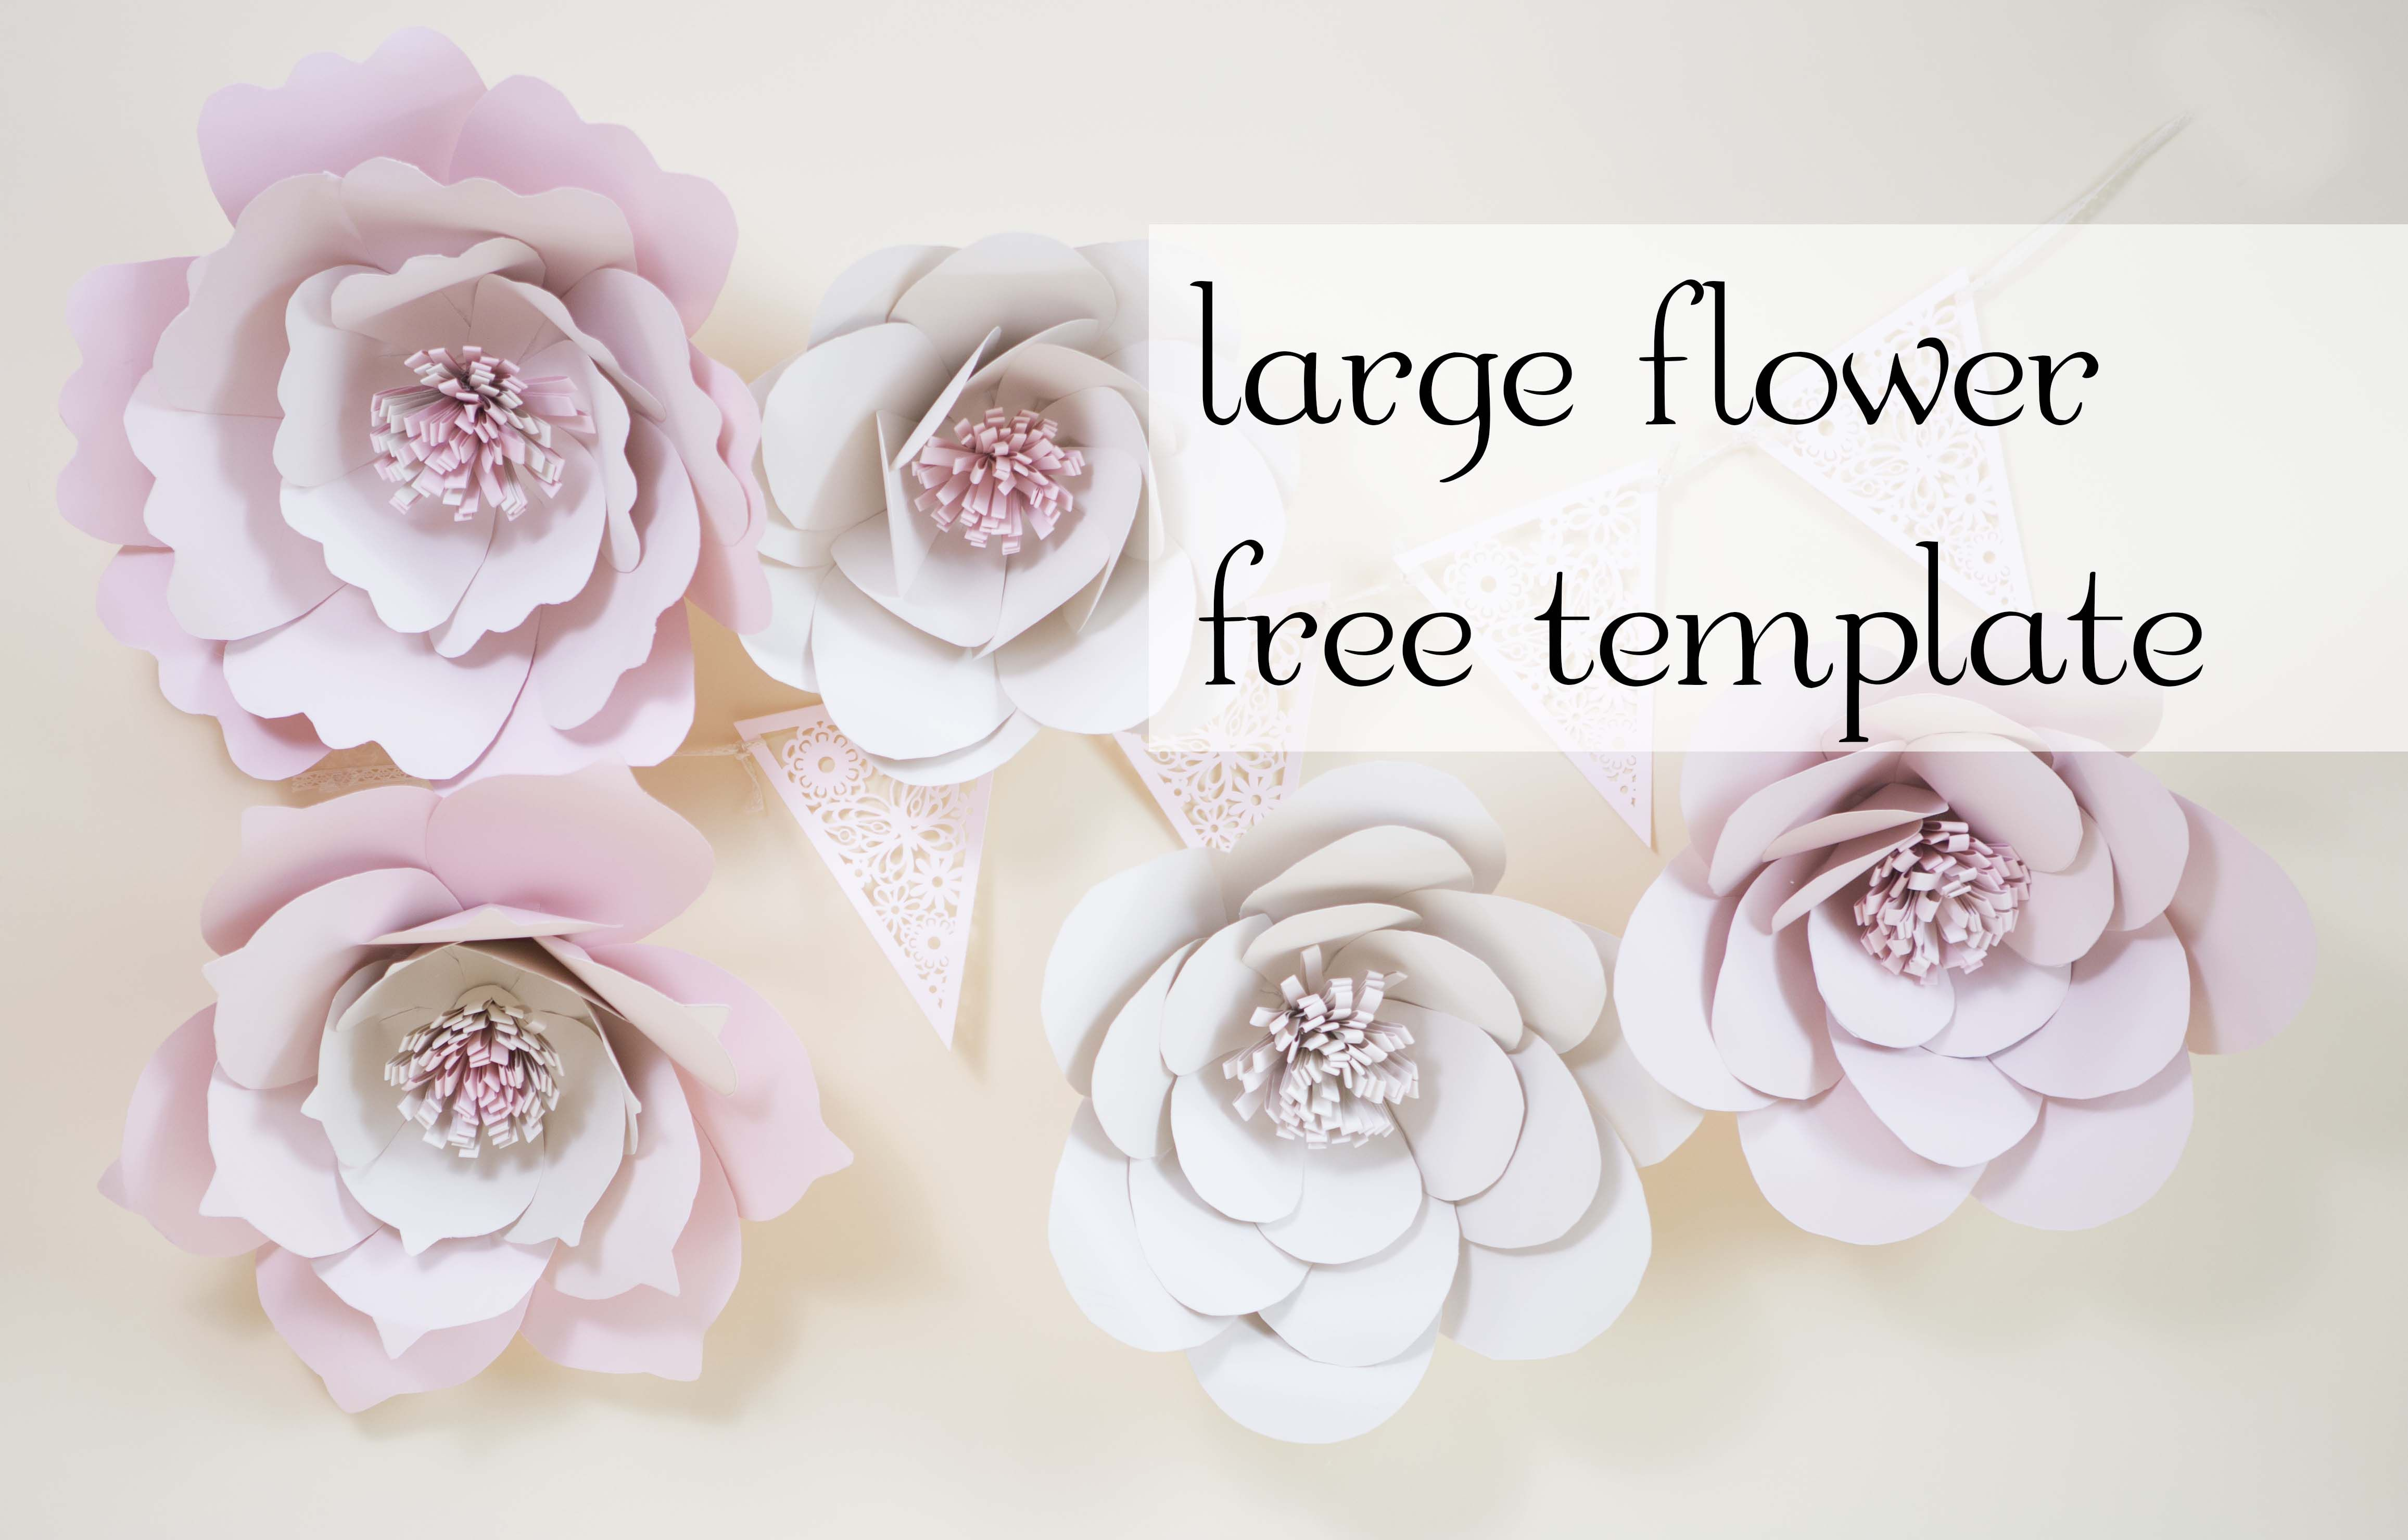 Giant Paper Flowers Free Template Free Paper Flower Templates